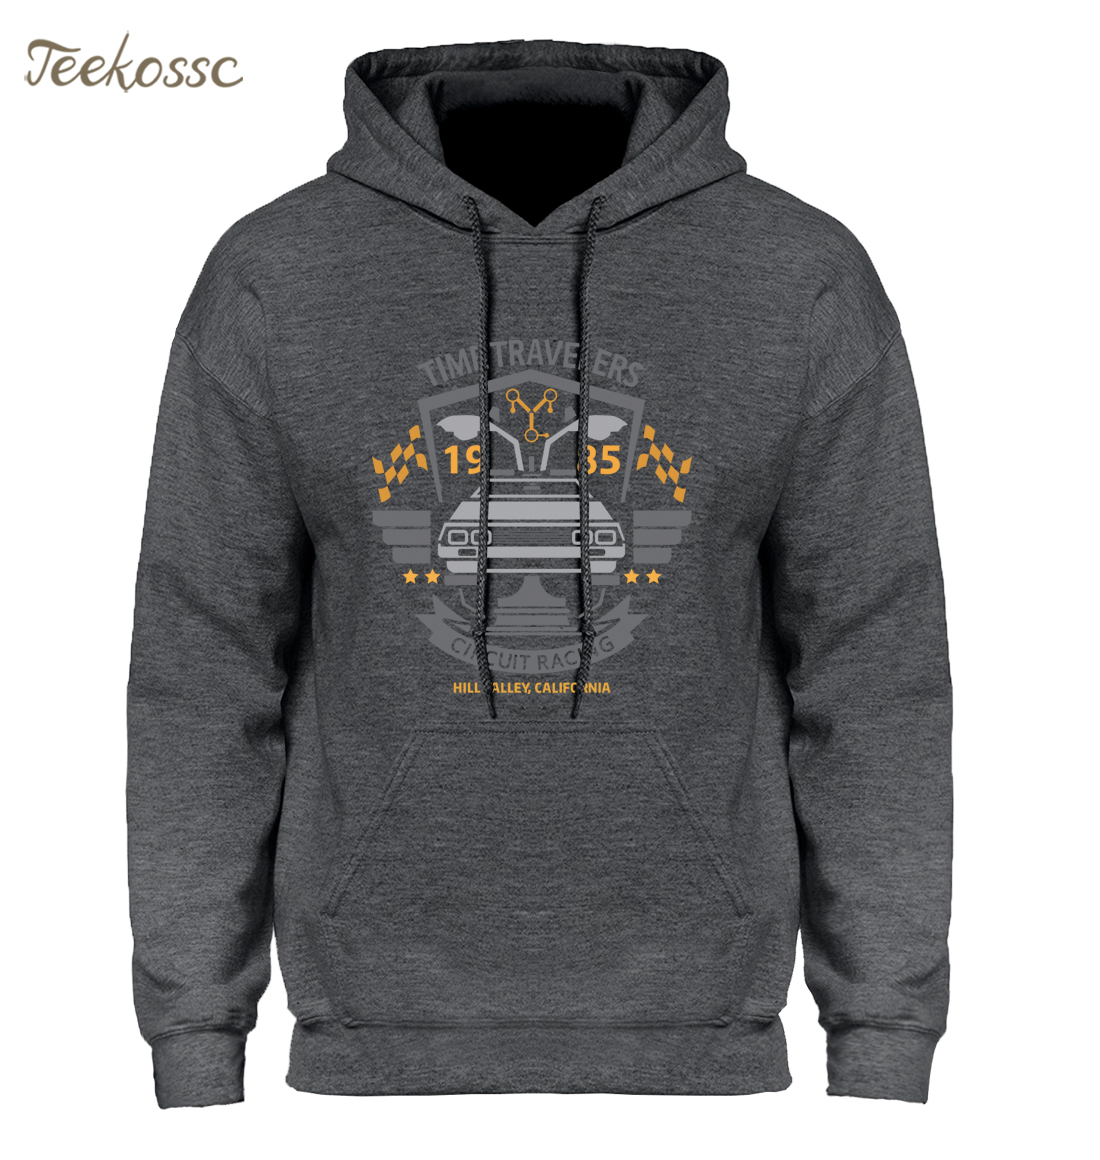 Back To The Future Hoodie Men Classic Movie Series Hoodies Mens Hooded Sweatshirts 2018 New  Brand Winter Autumn Black Pullover